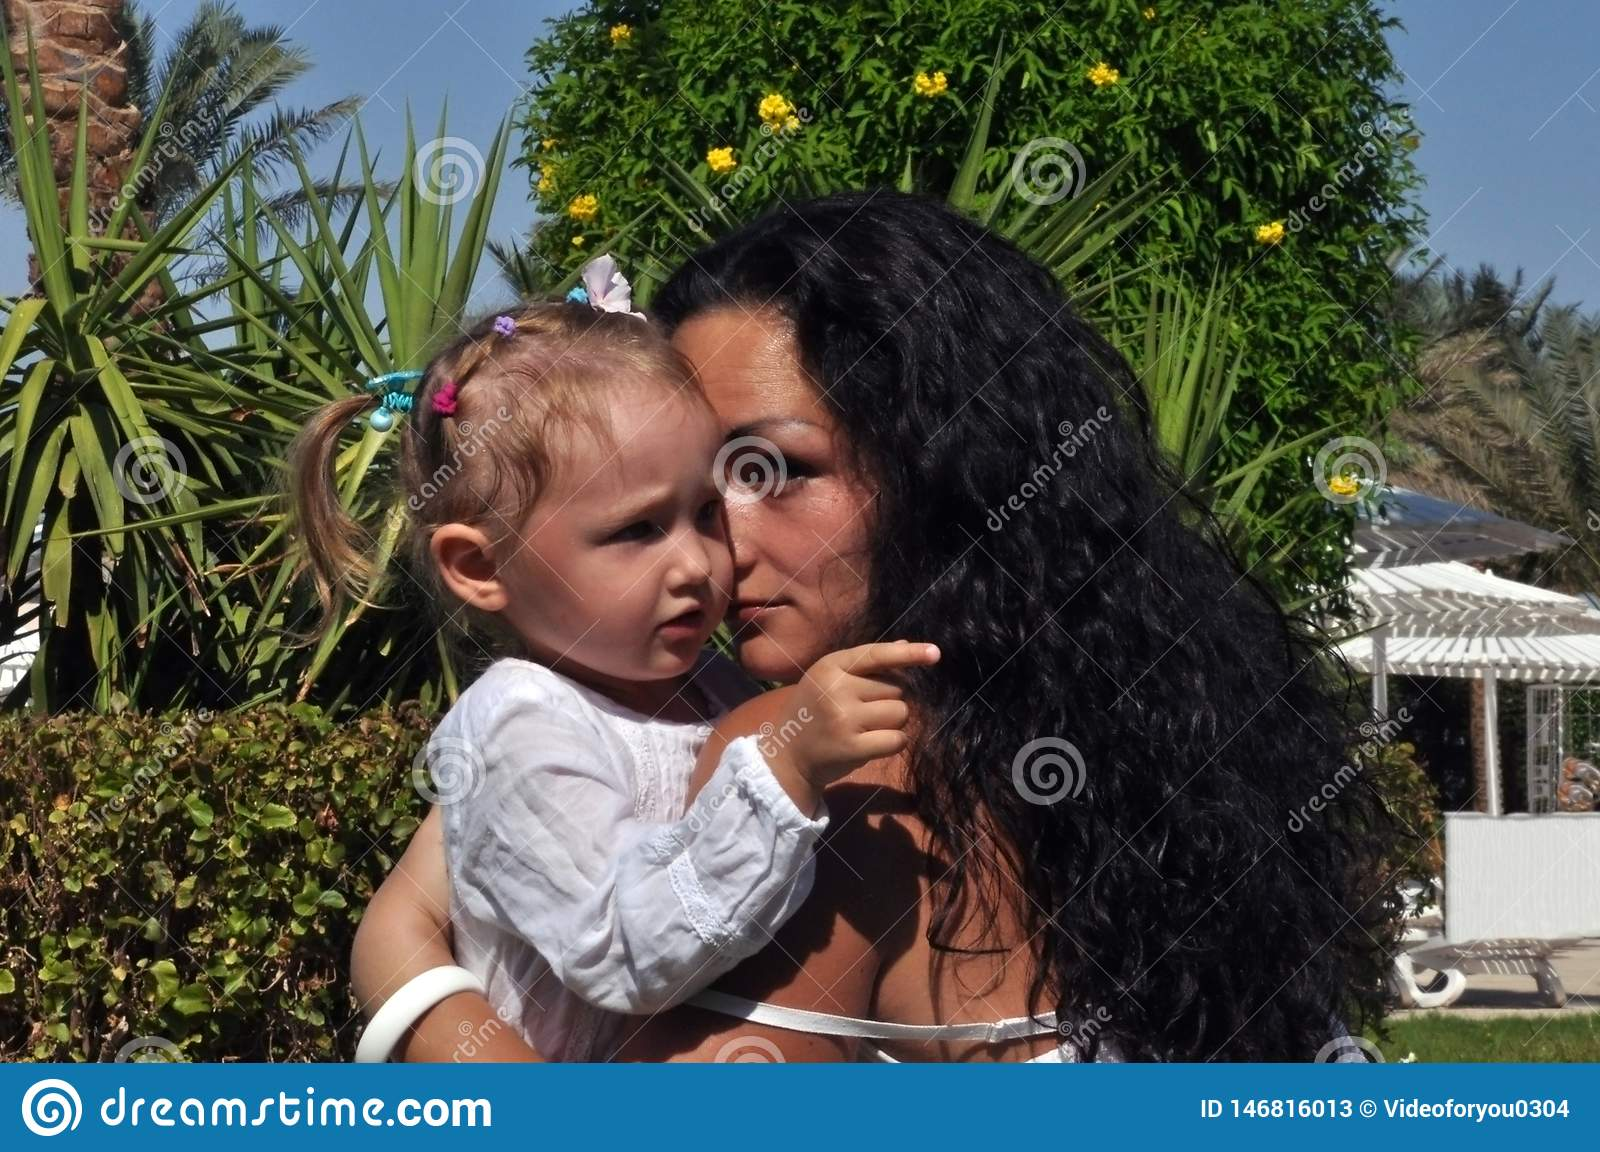 A woman with long, black curly hair embraces her daughter on a sunny day.